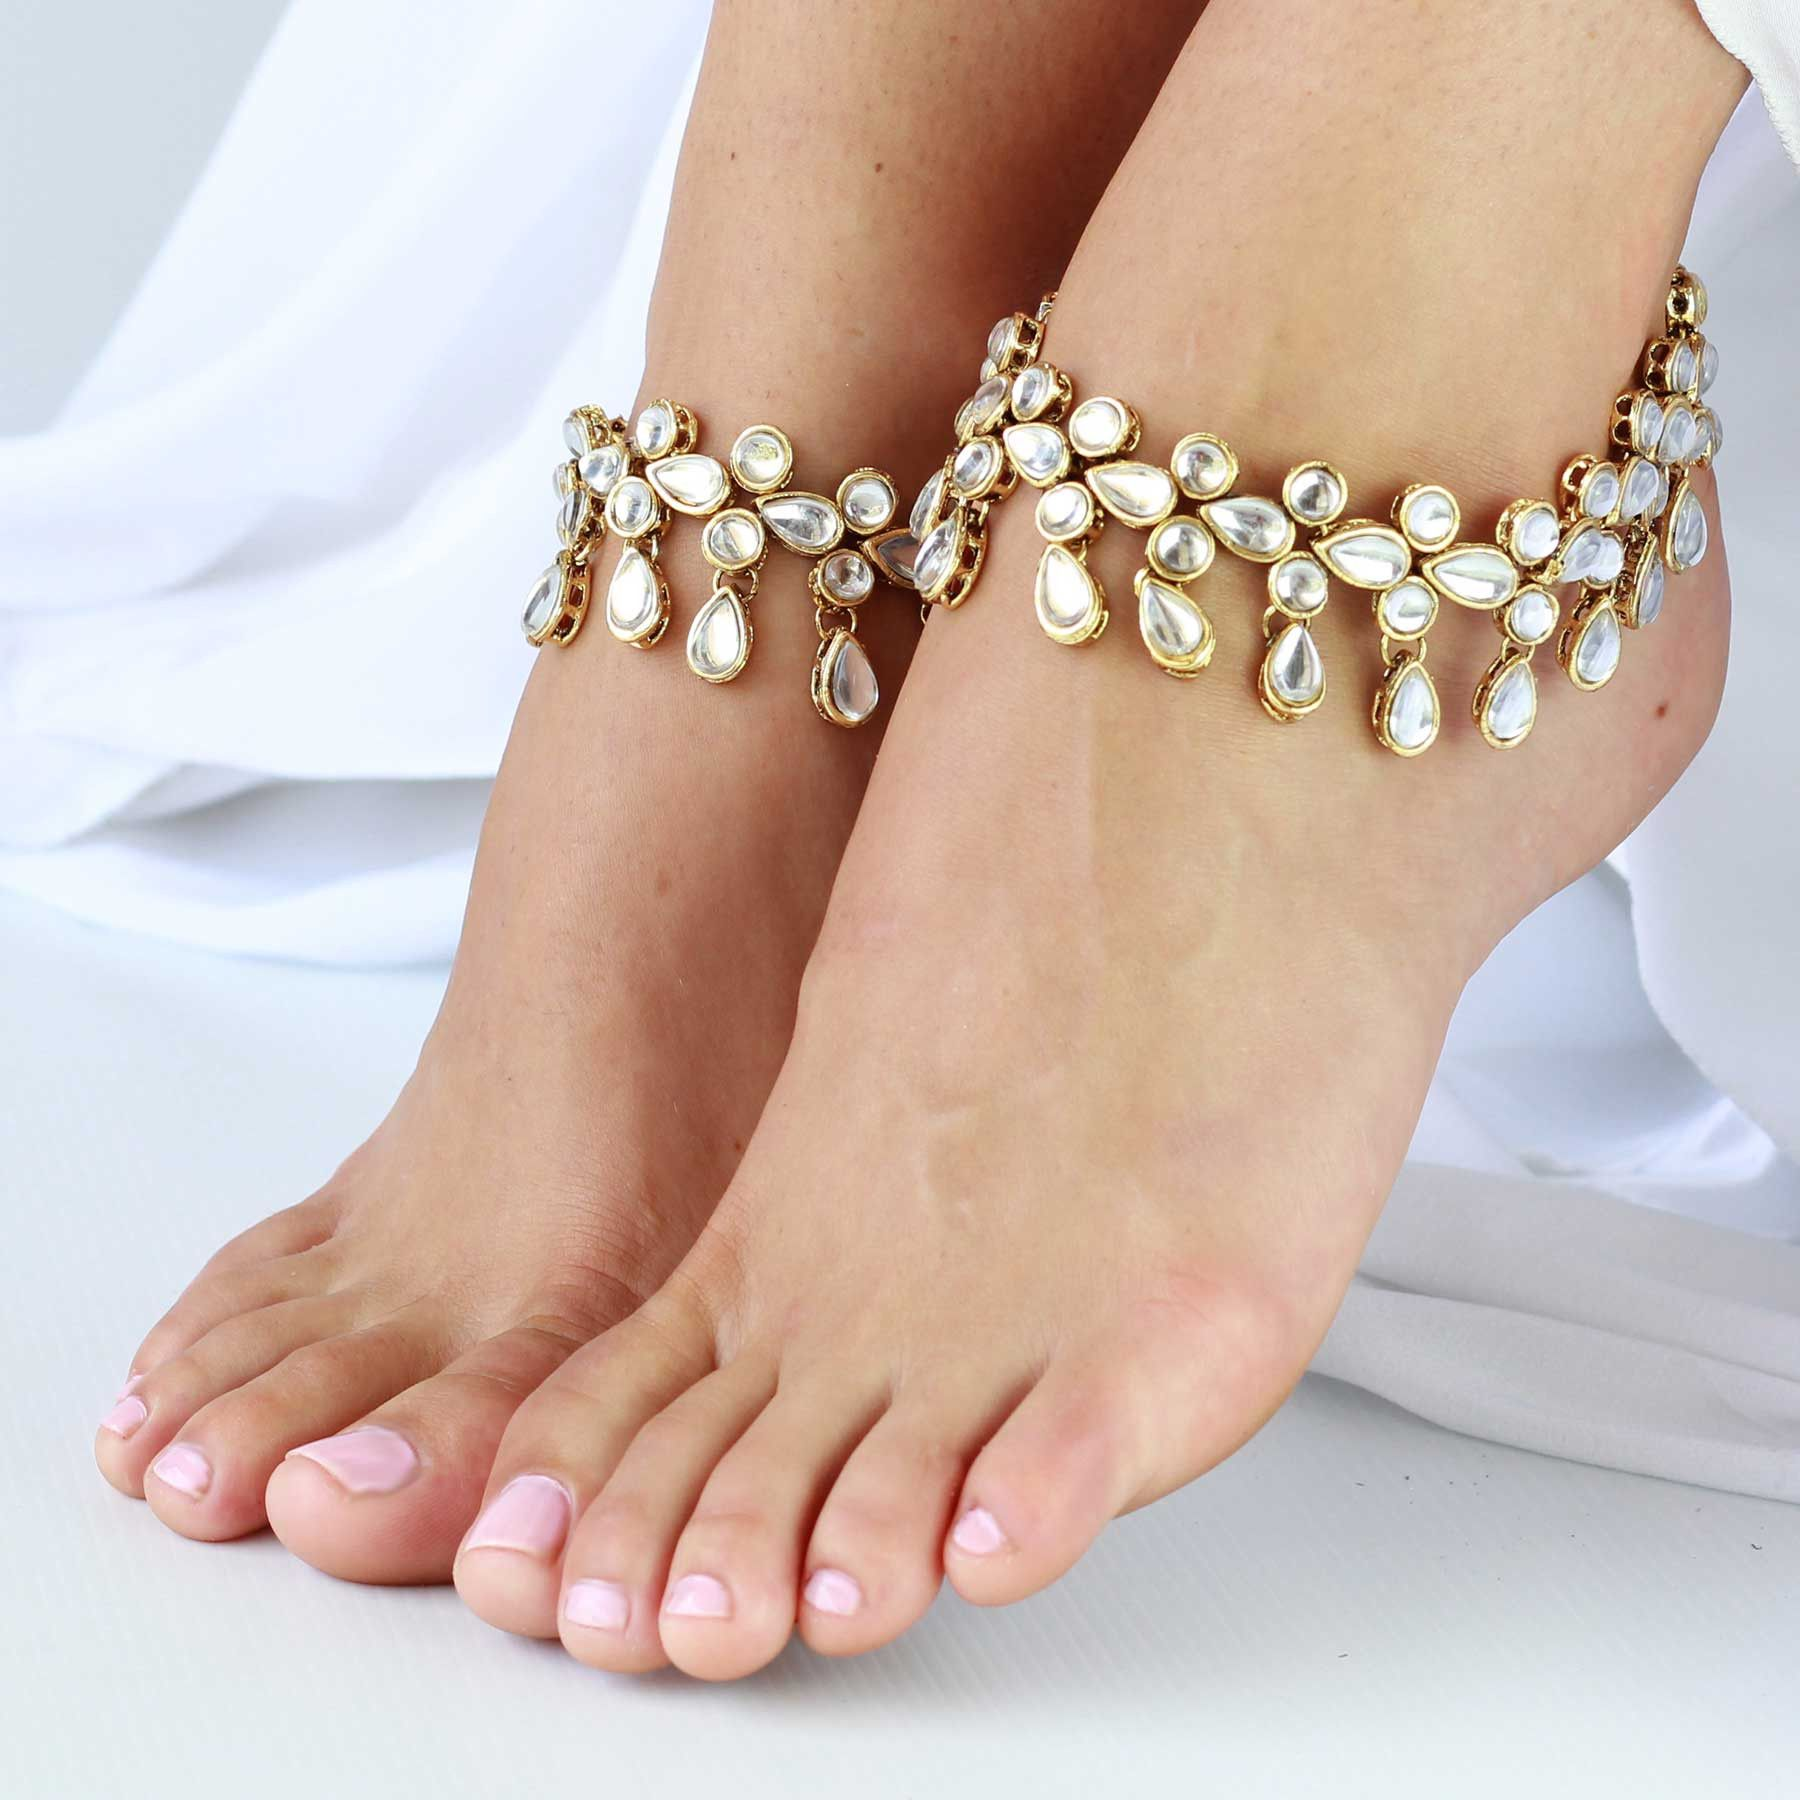 uk garters garter anklet from crochet barefoot store handmade quality dance wedding yogo bridal jewelry sandals dhgate kingagarden product foot cheap com white for pure control flower